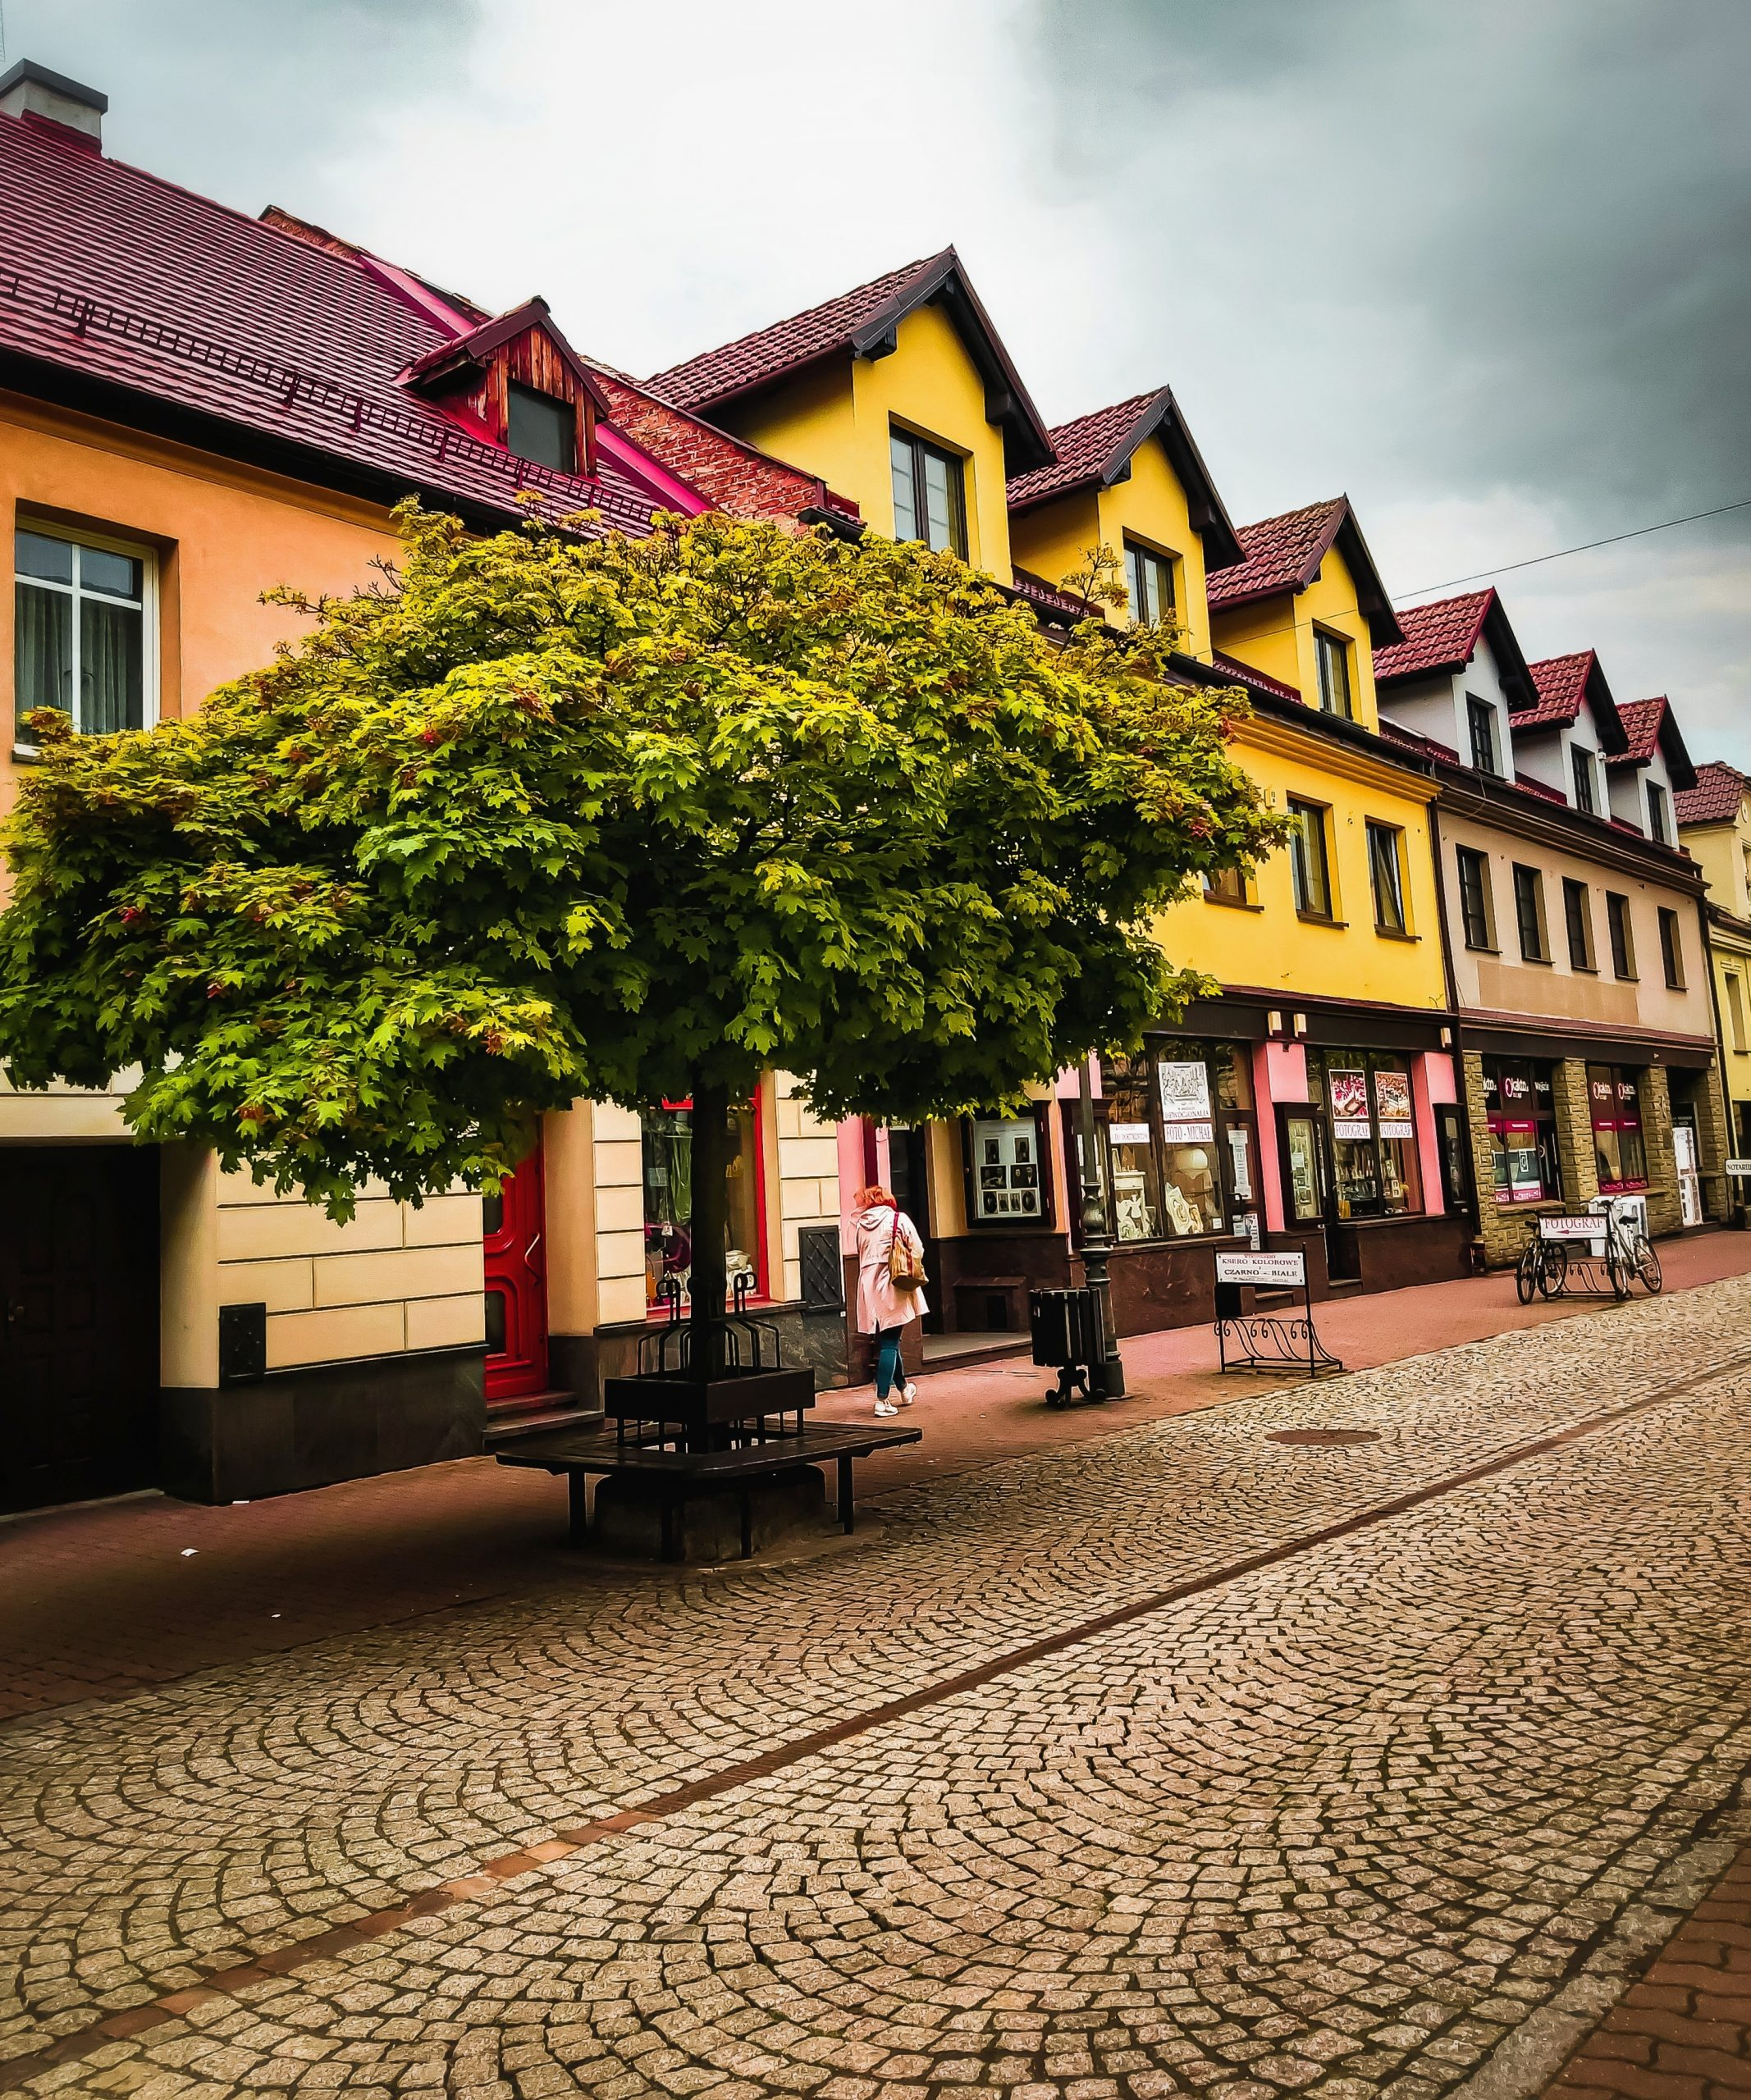 A street of a town in Poland